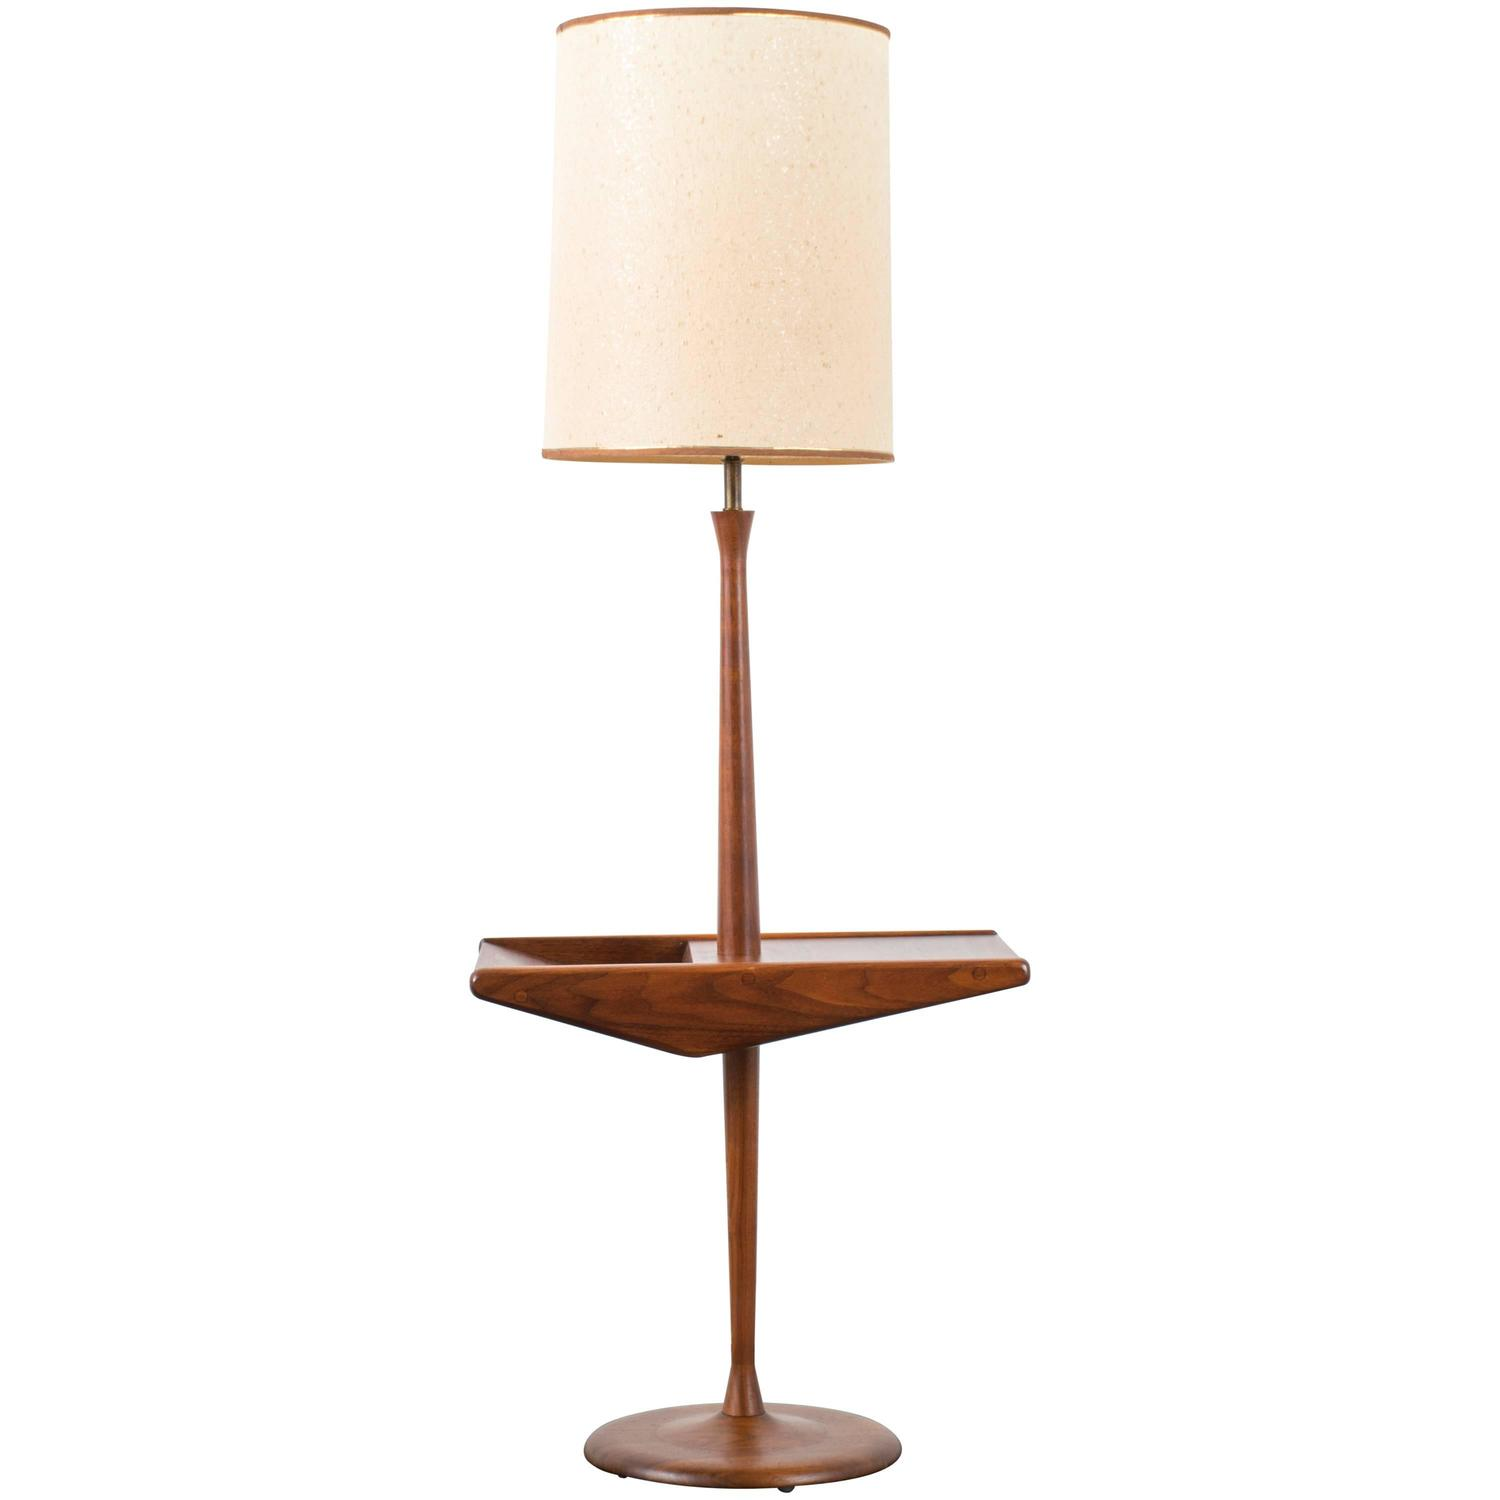 Mid century modern floor lamp by laurel lamp at 1stdibs for Modern contemporary floor lamp